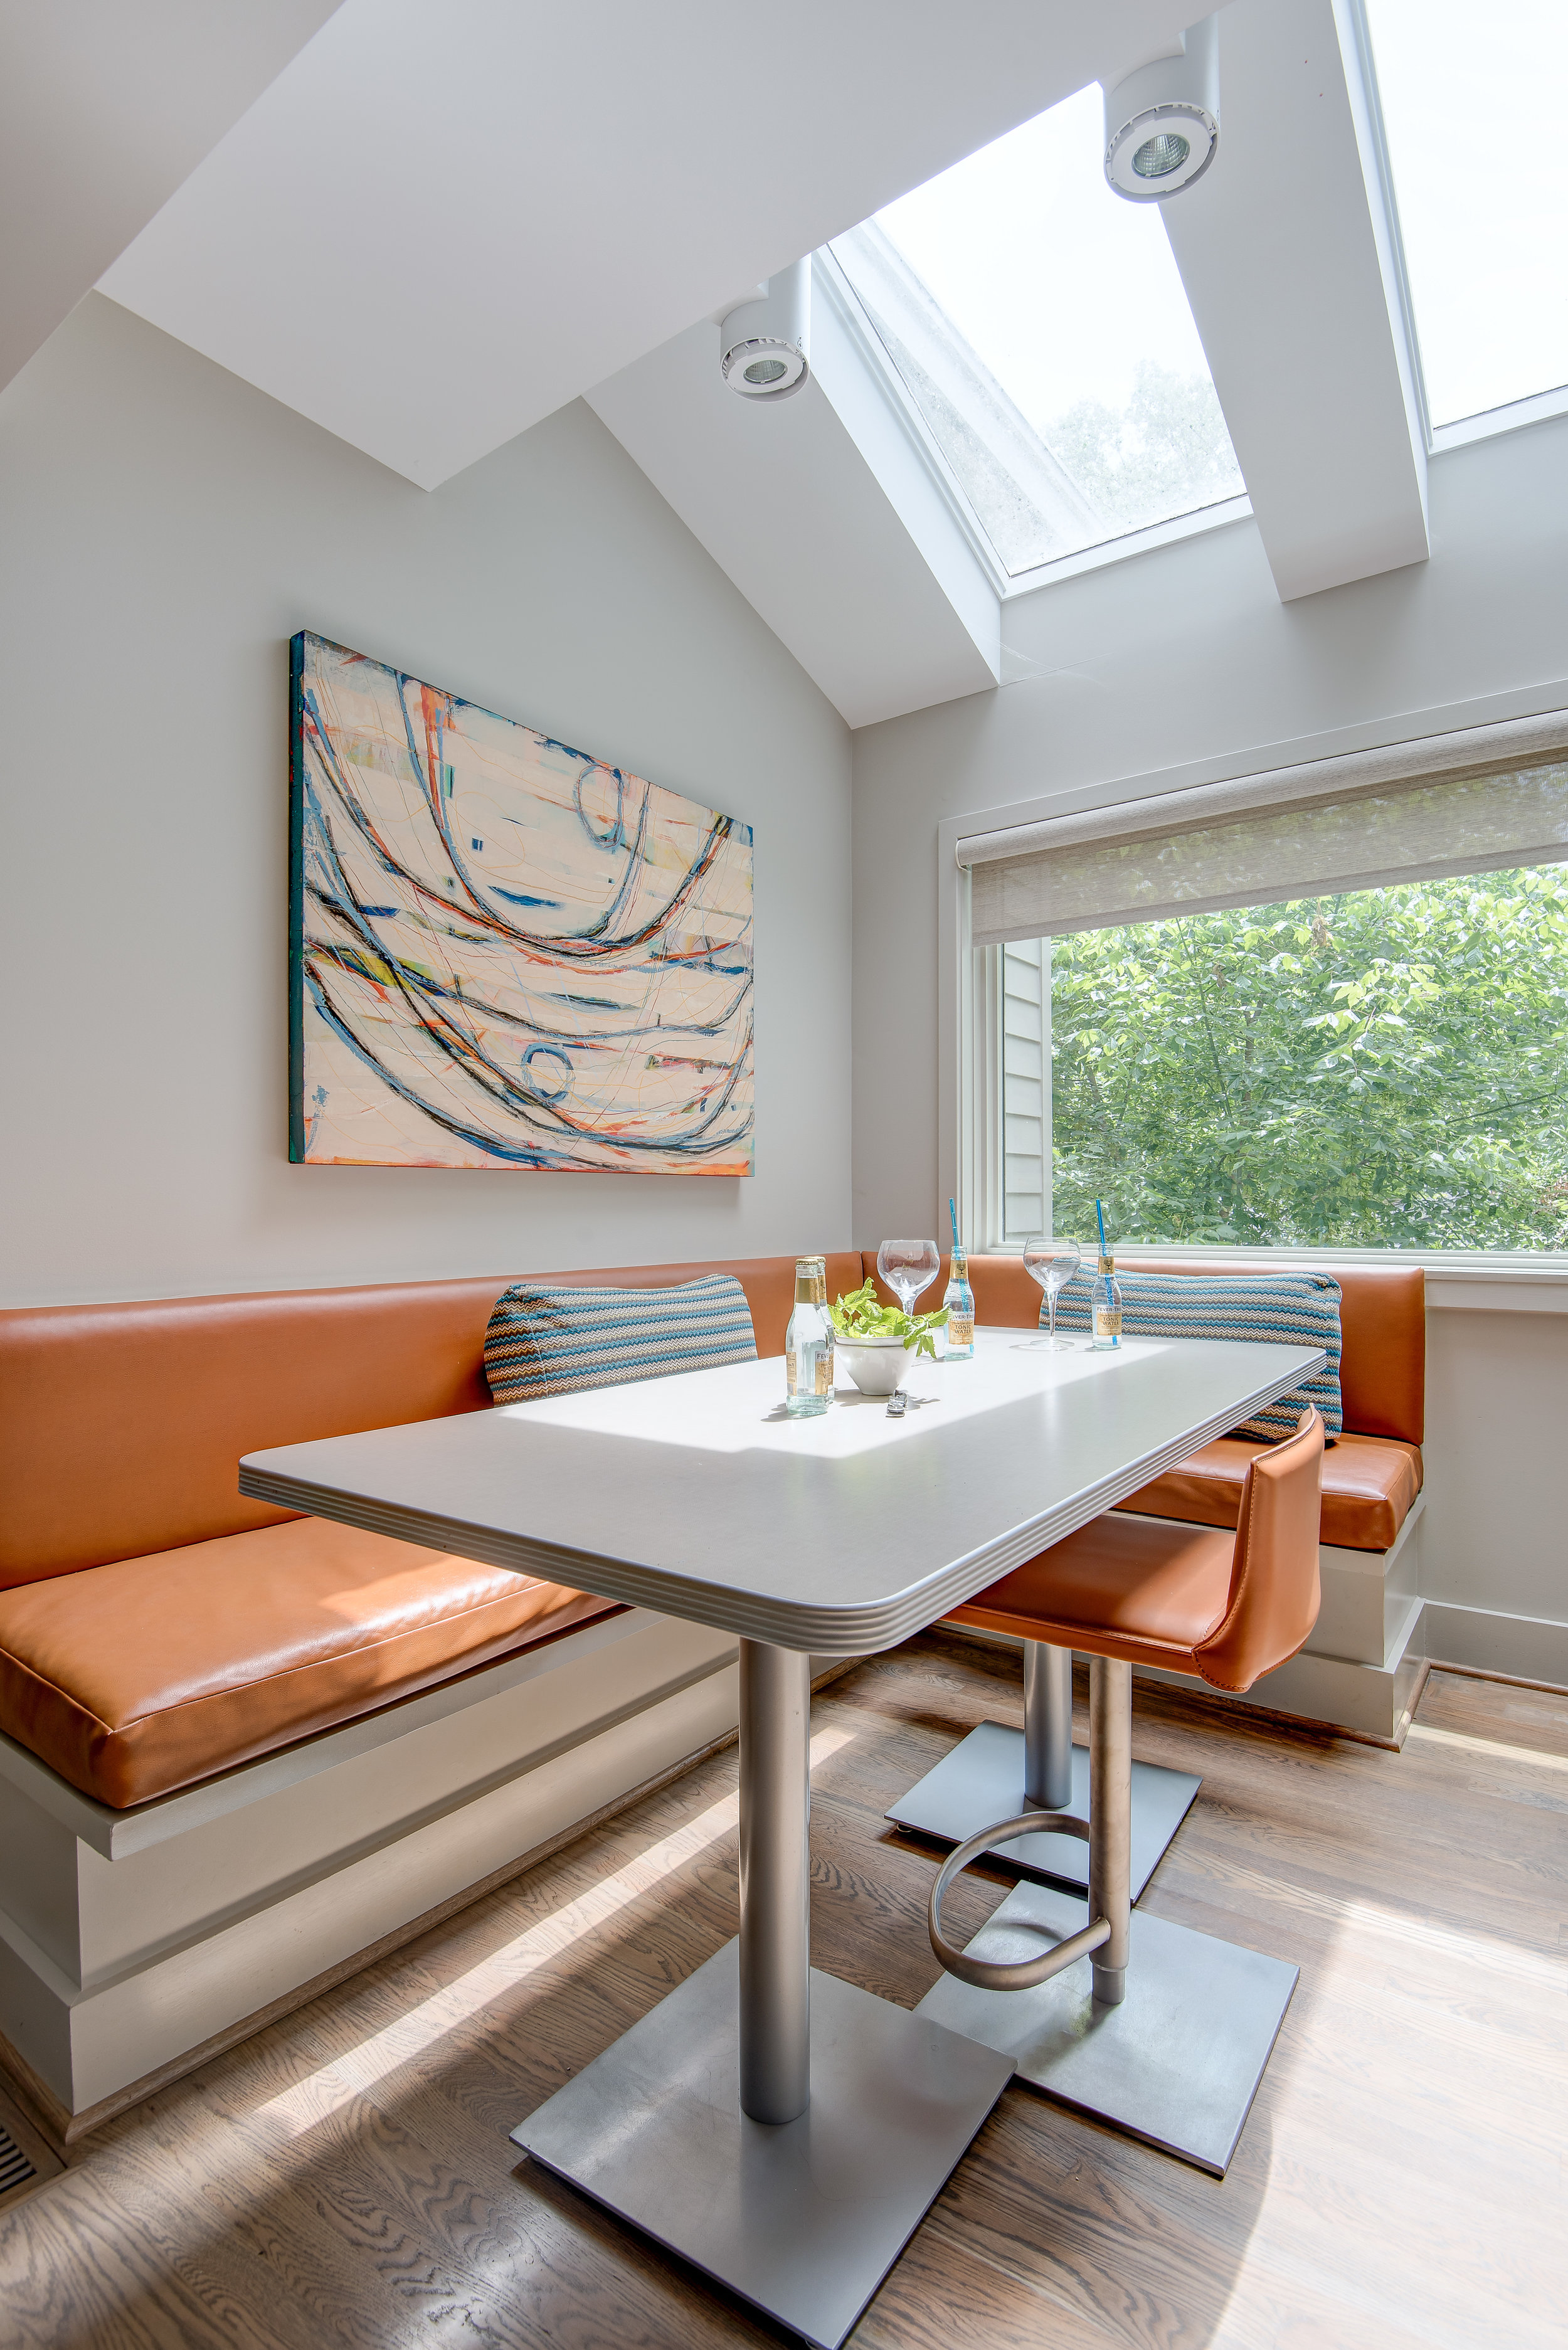 Interior Breakfast Nook-1.jpg